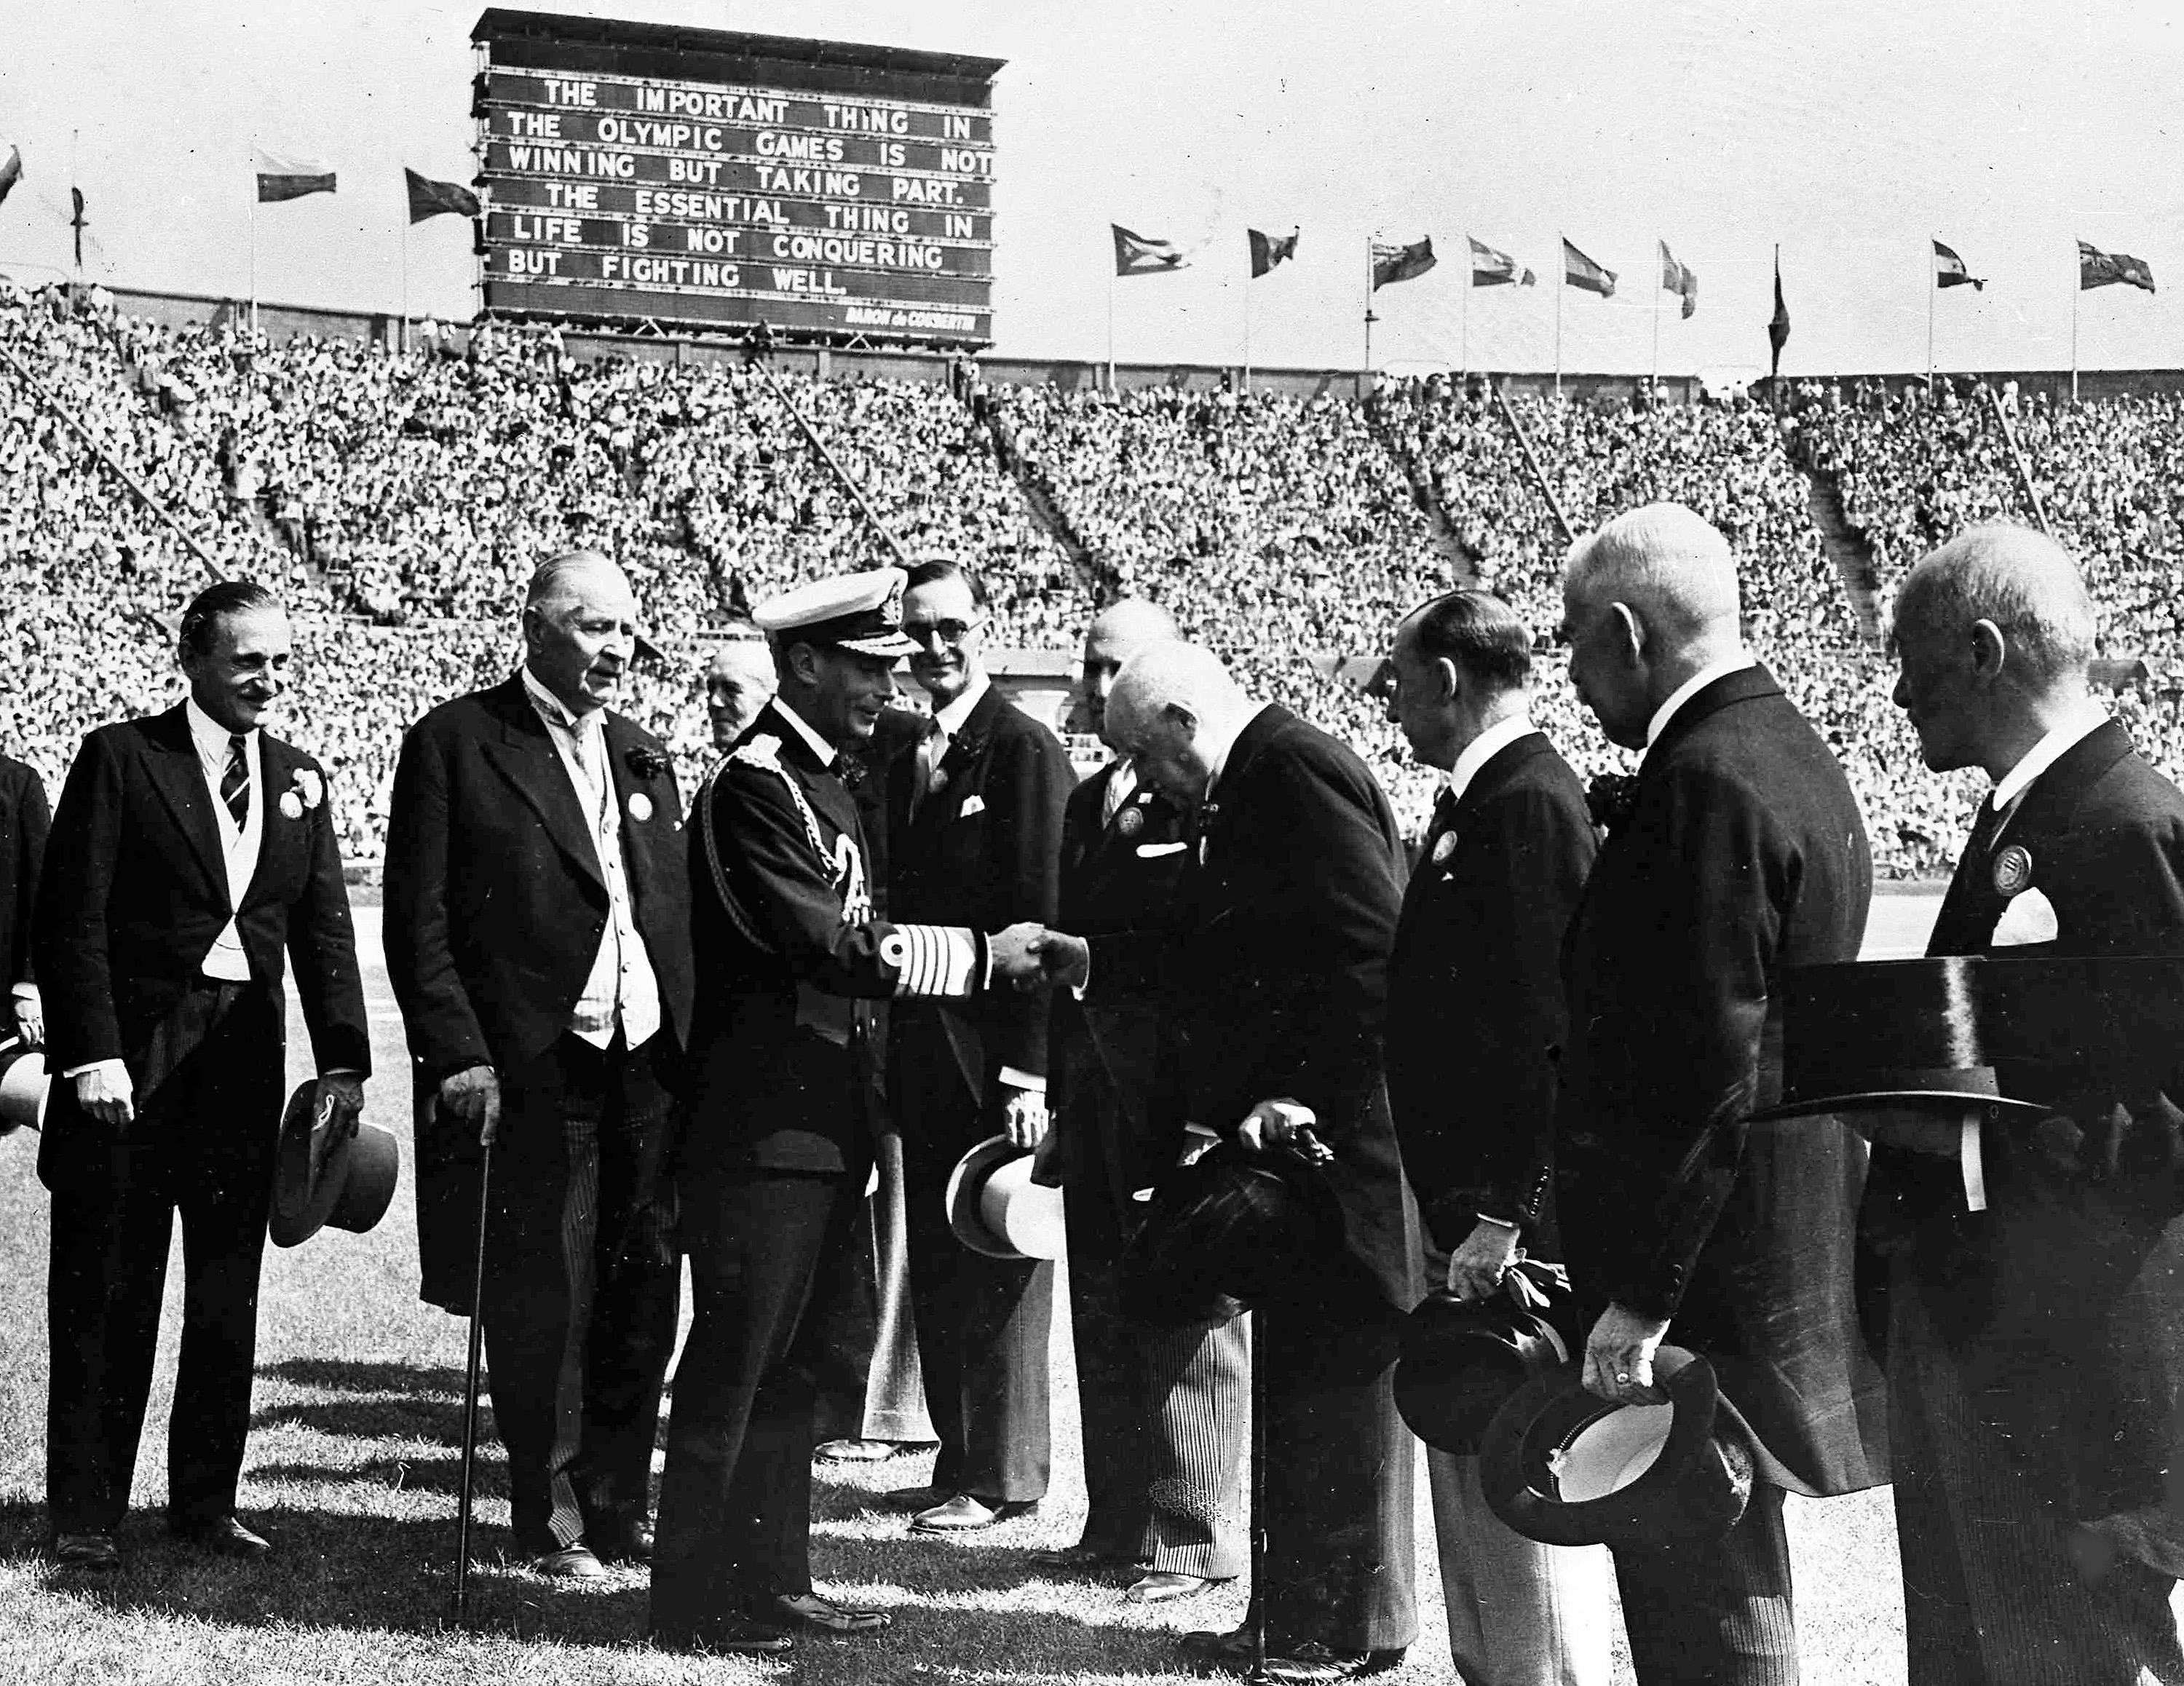 Britain's King George VI, in naval uniform, shakes hands with members of the International Olympic Committee during the opening ceremony of the XIV Summer Olympic Games, at Wembley Stadium, London, July 29, 1948. (AP Photo)